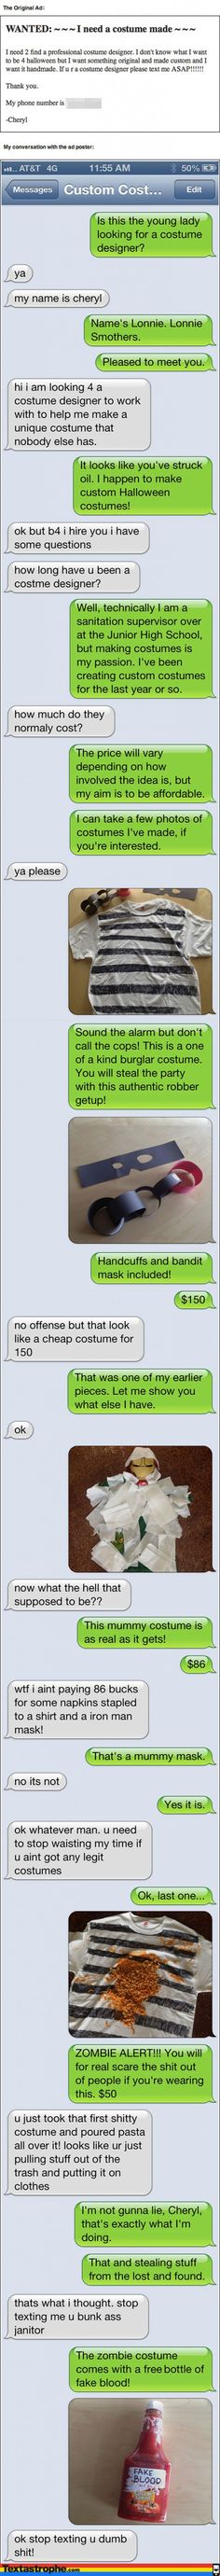 """Text Pranks: http://news.distractify.com/fun/bizarre/the-most-epic-text-pranks-of-all-time/?v=1 """"The Custom Costume"""" one is my favorite."""